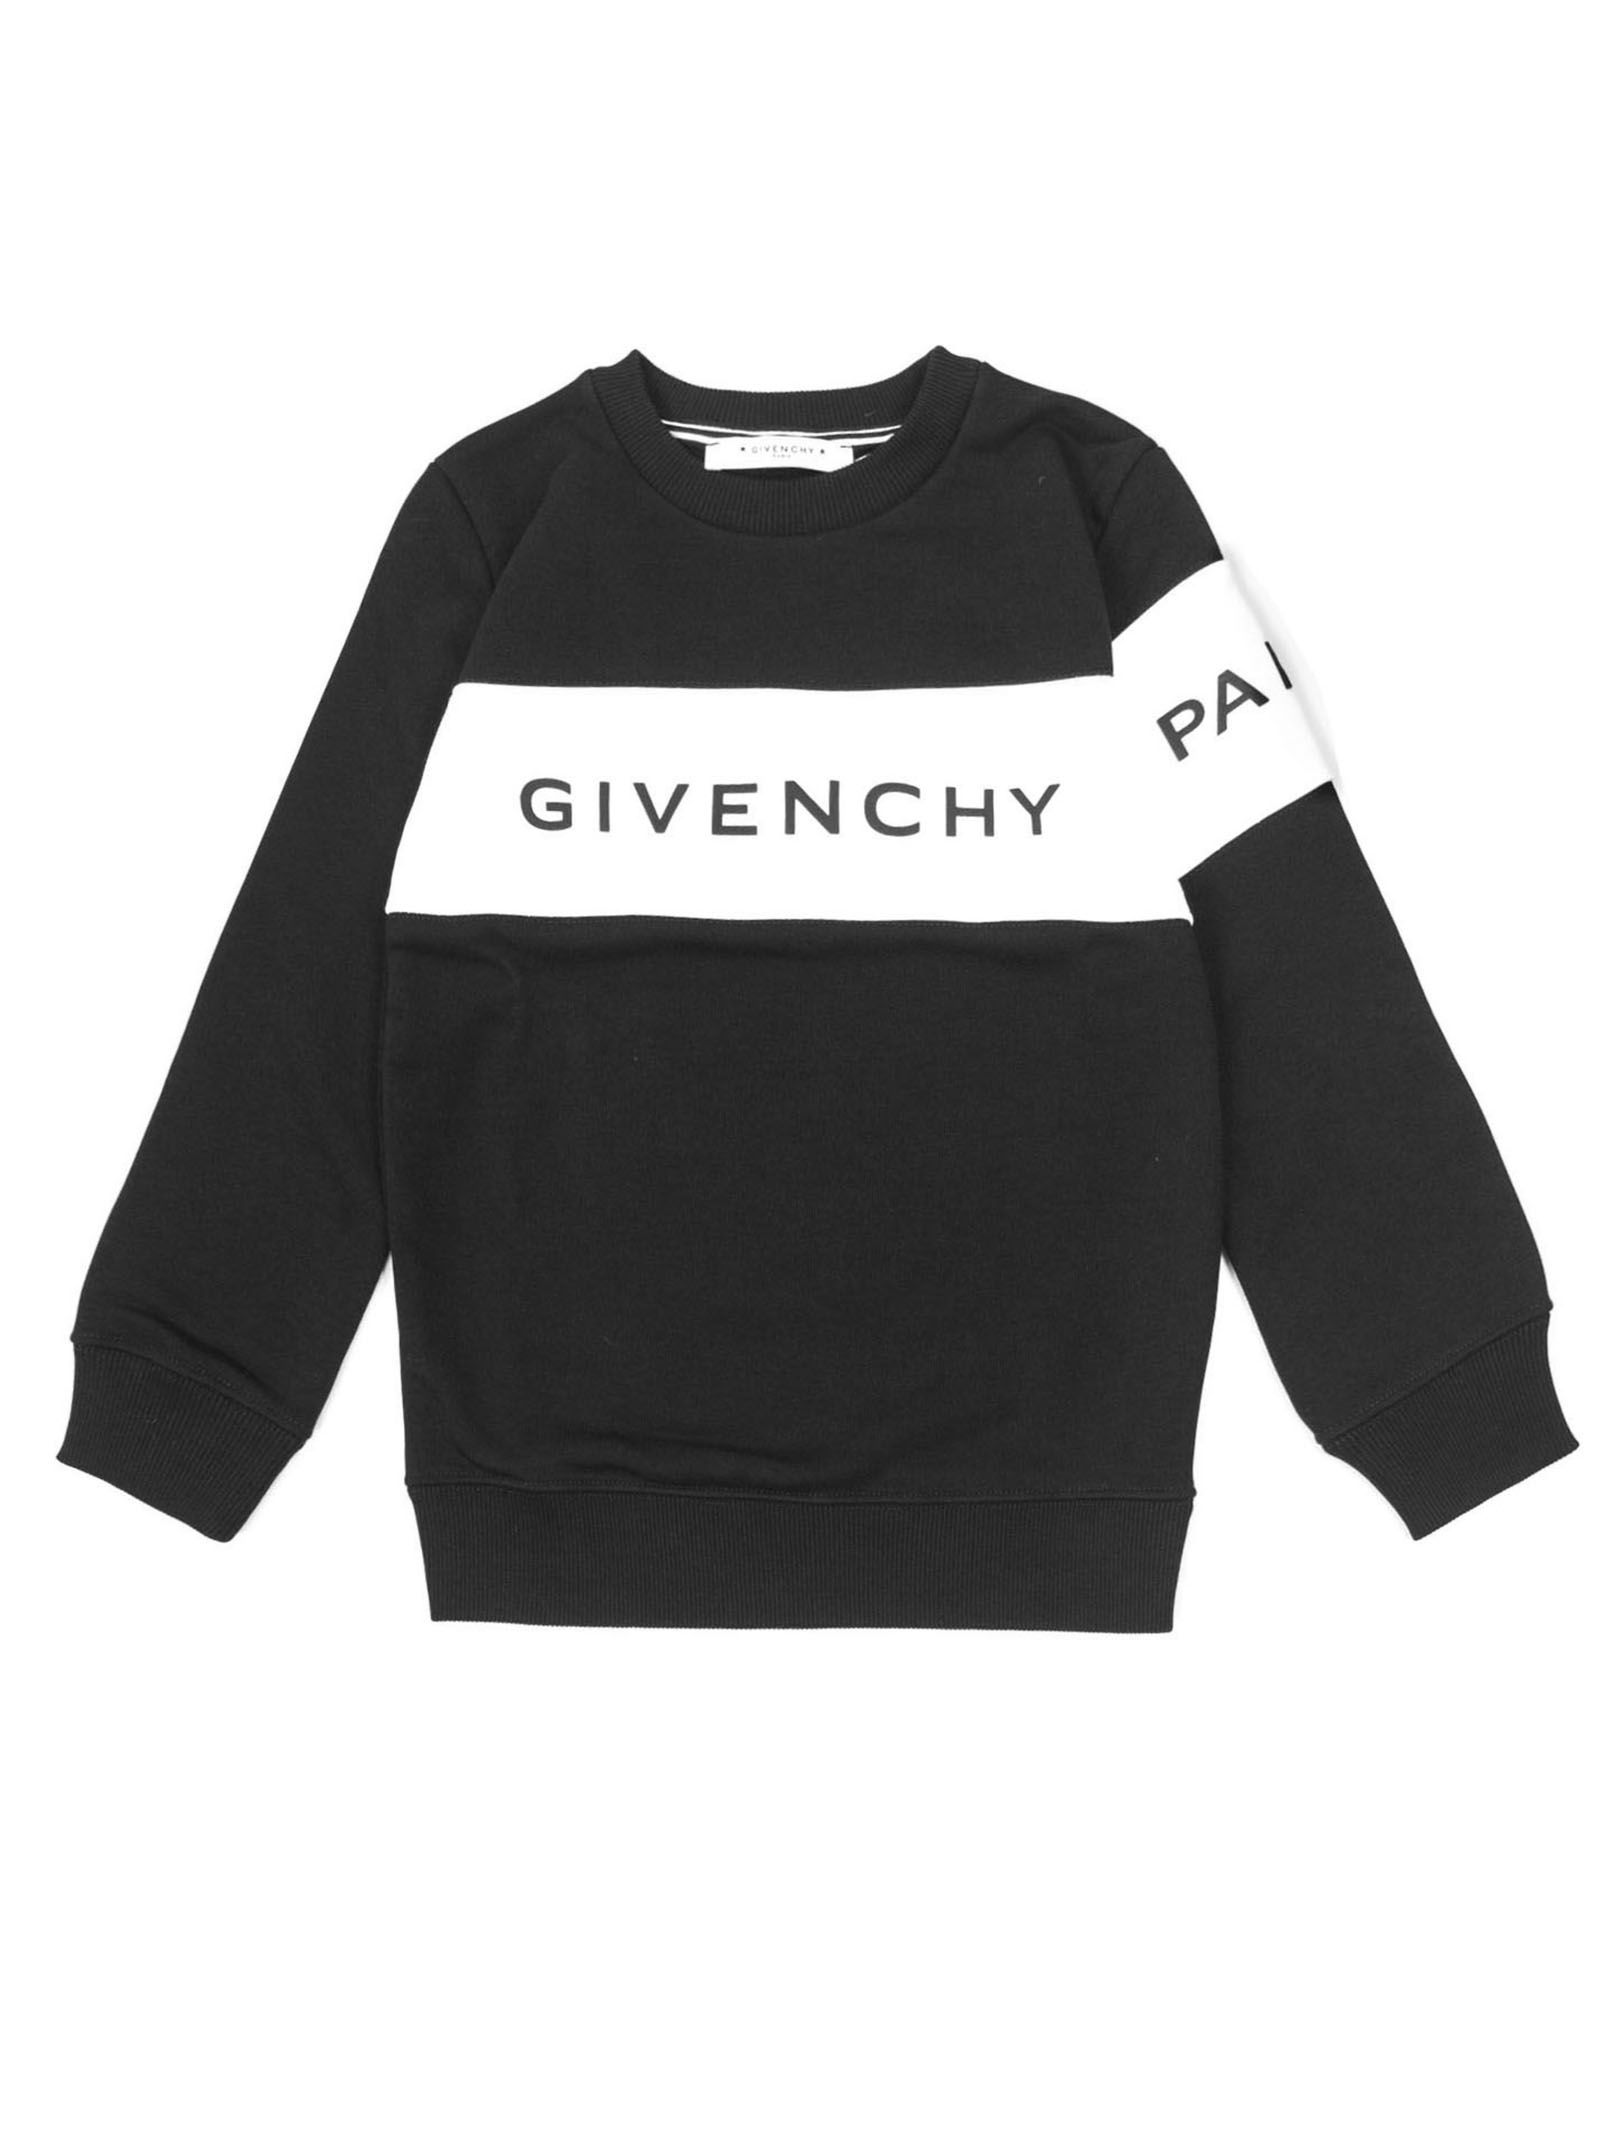 62de60f14aaee Givenchy Givenchy Black Cotton Blend Sweatshirt - Nero - 10978795 ...